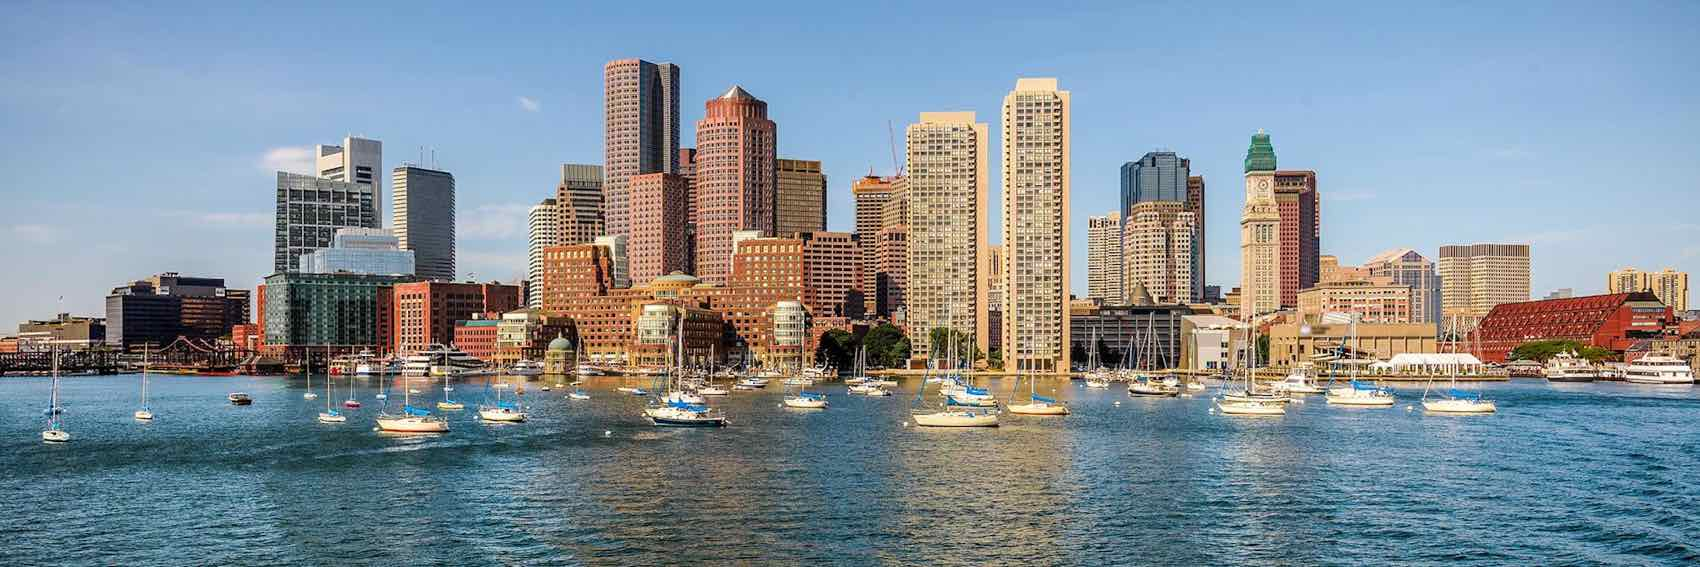 The city of Boston by waterfront